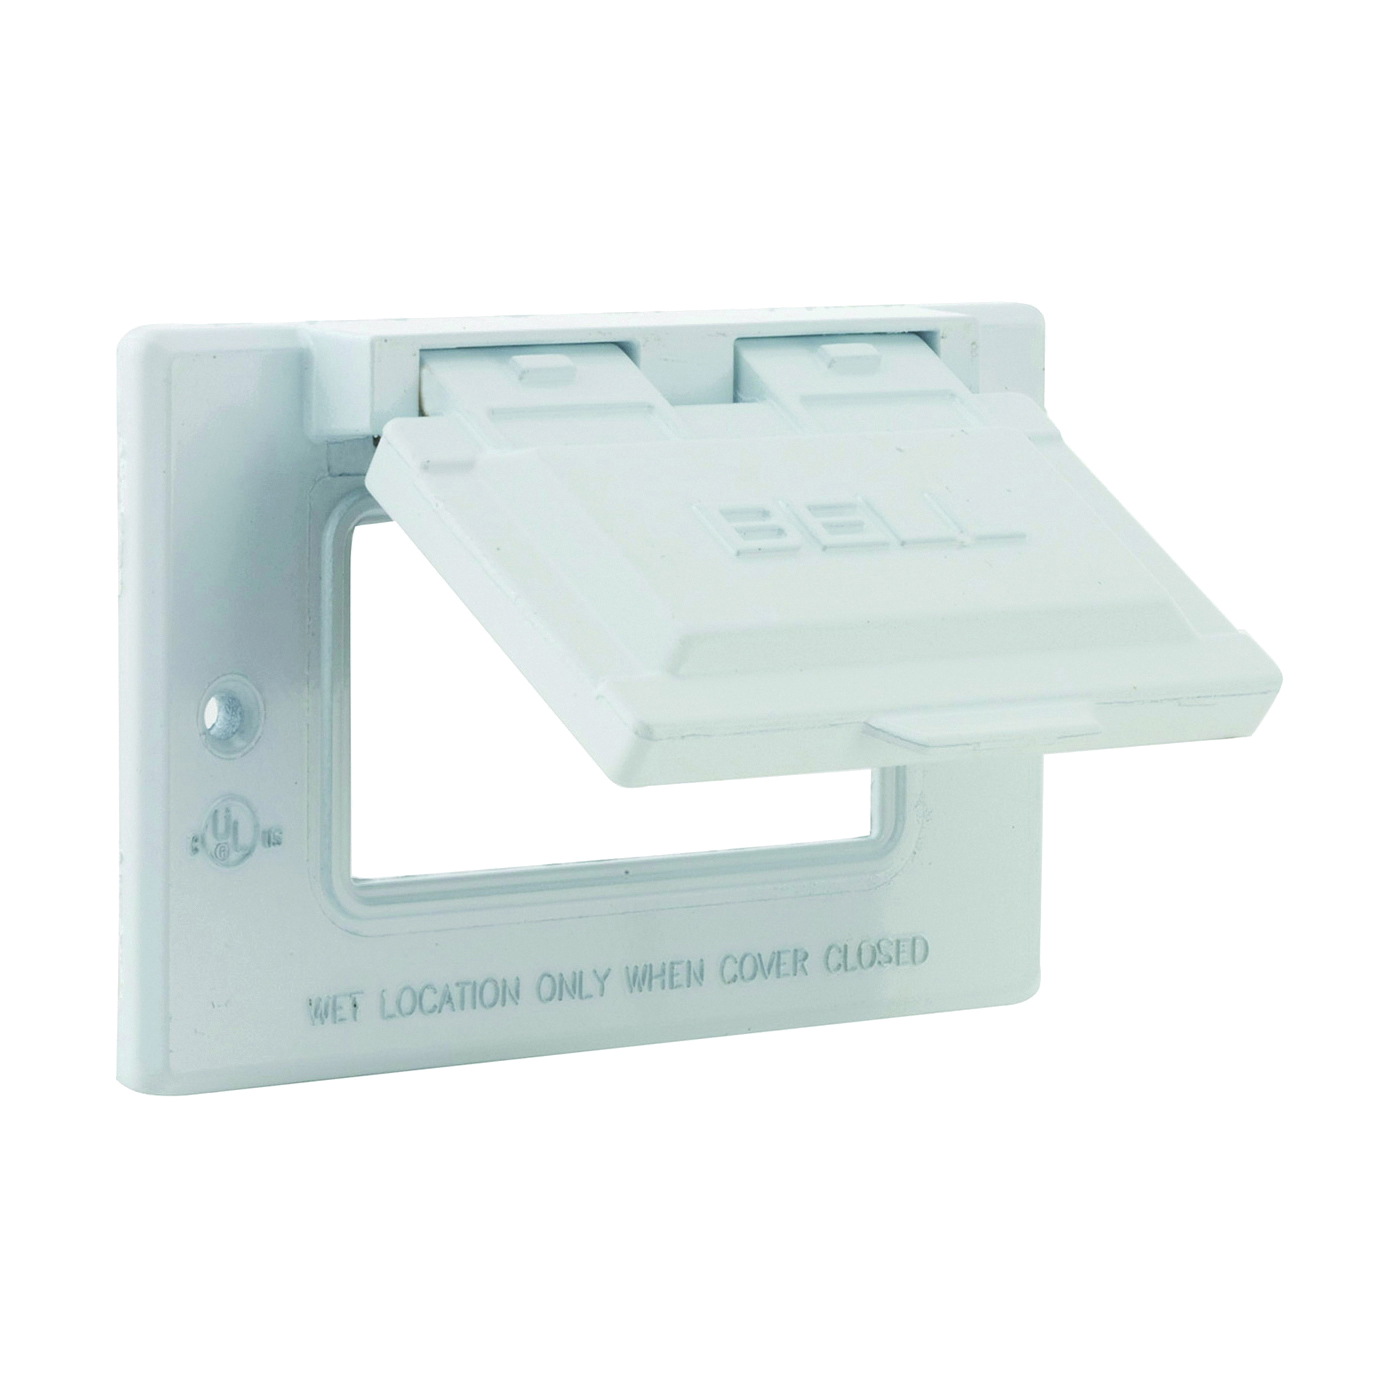 Picture of HUBBELL 5101-1 Cover, 2-13/16 in L, 4-9/16 in W, Metal, White, Powder-Coated